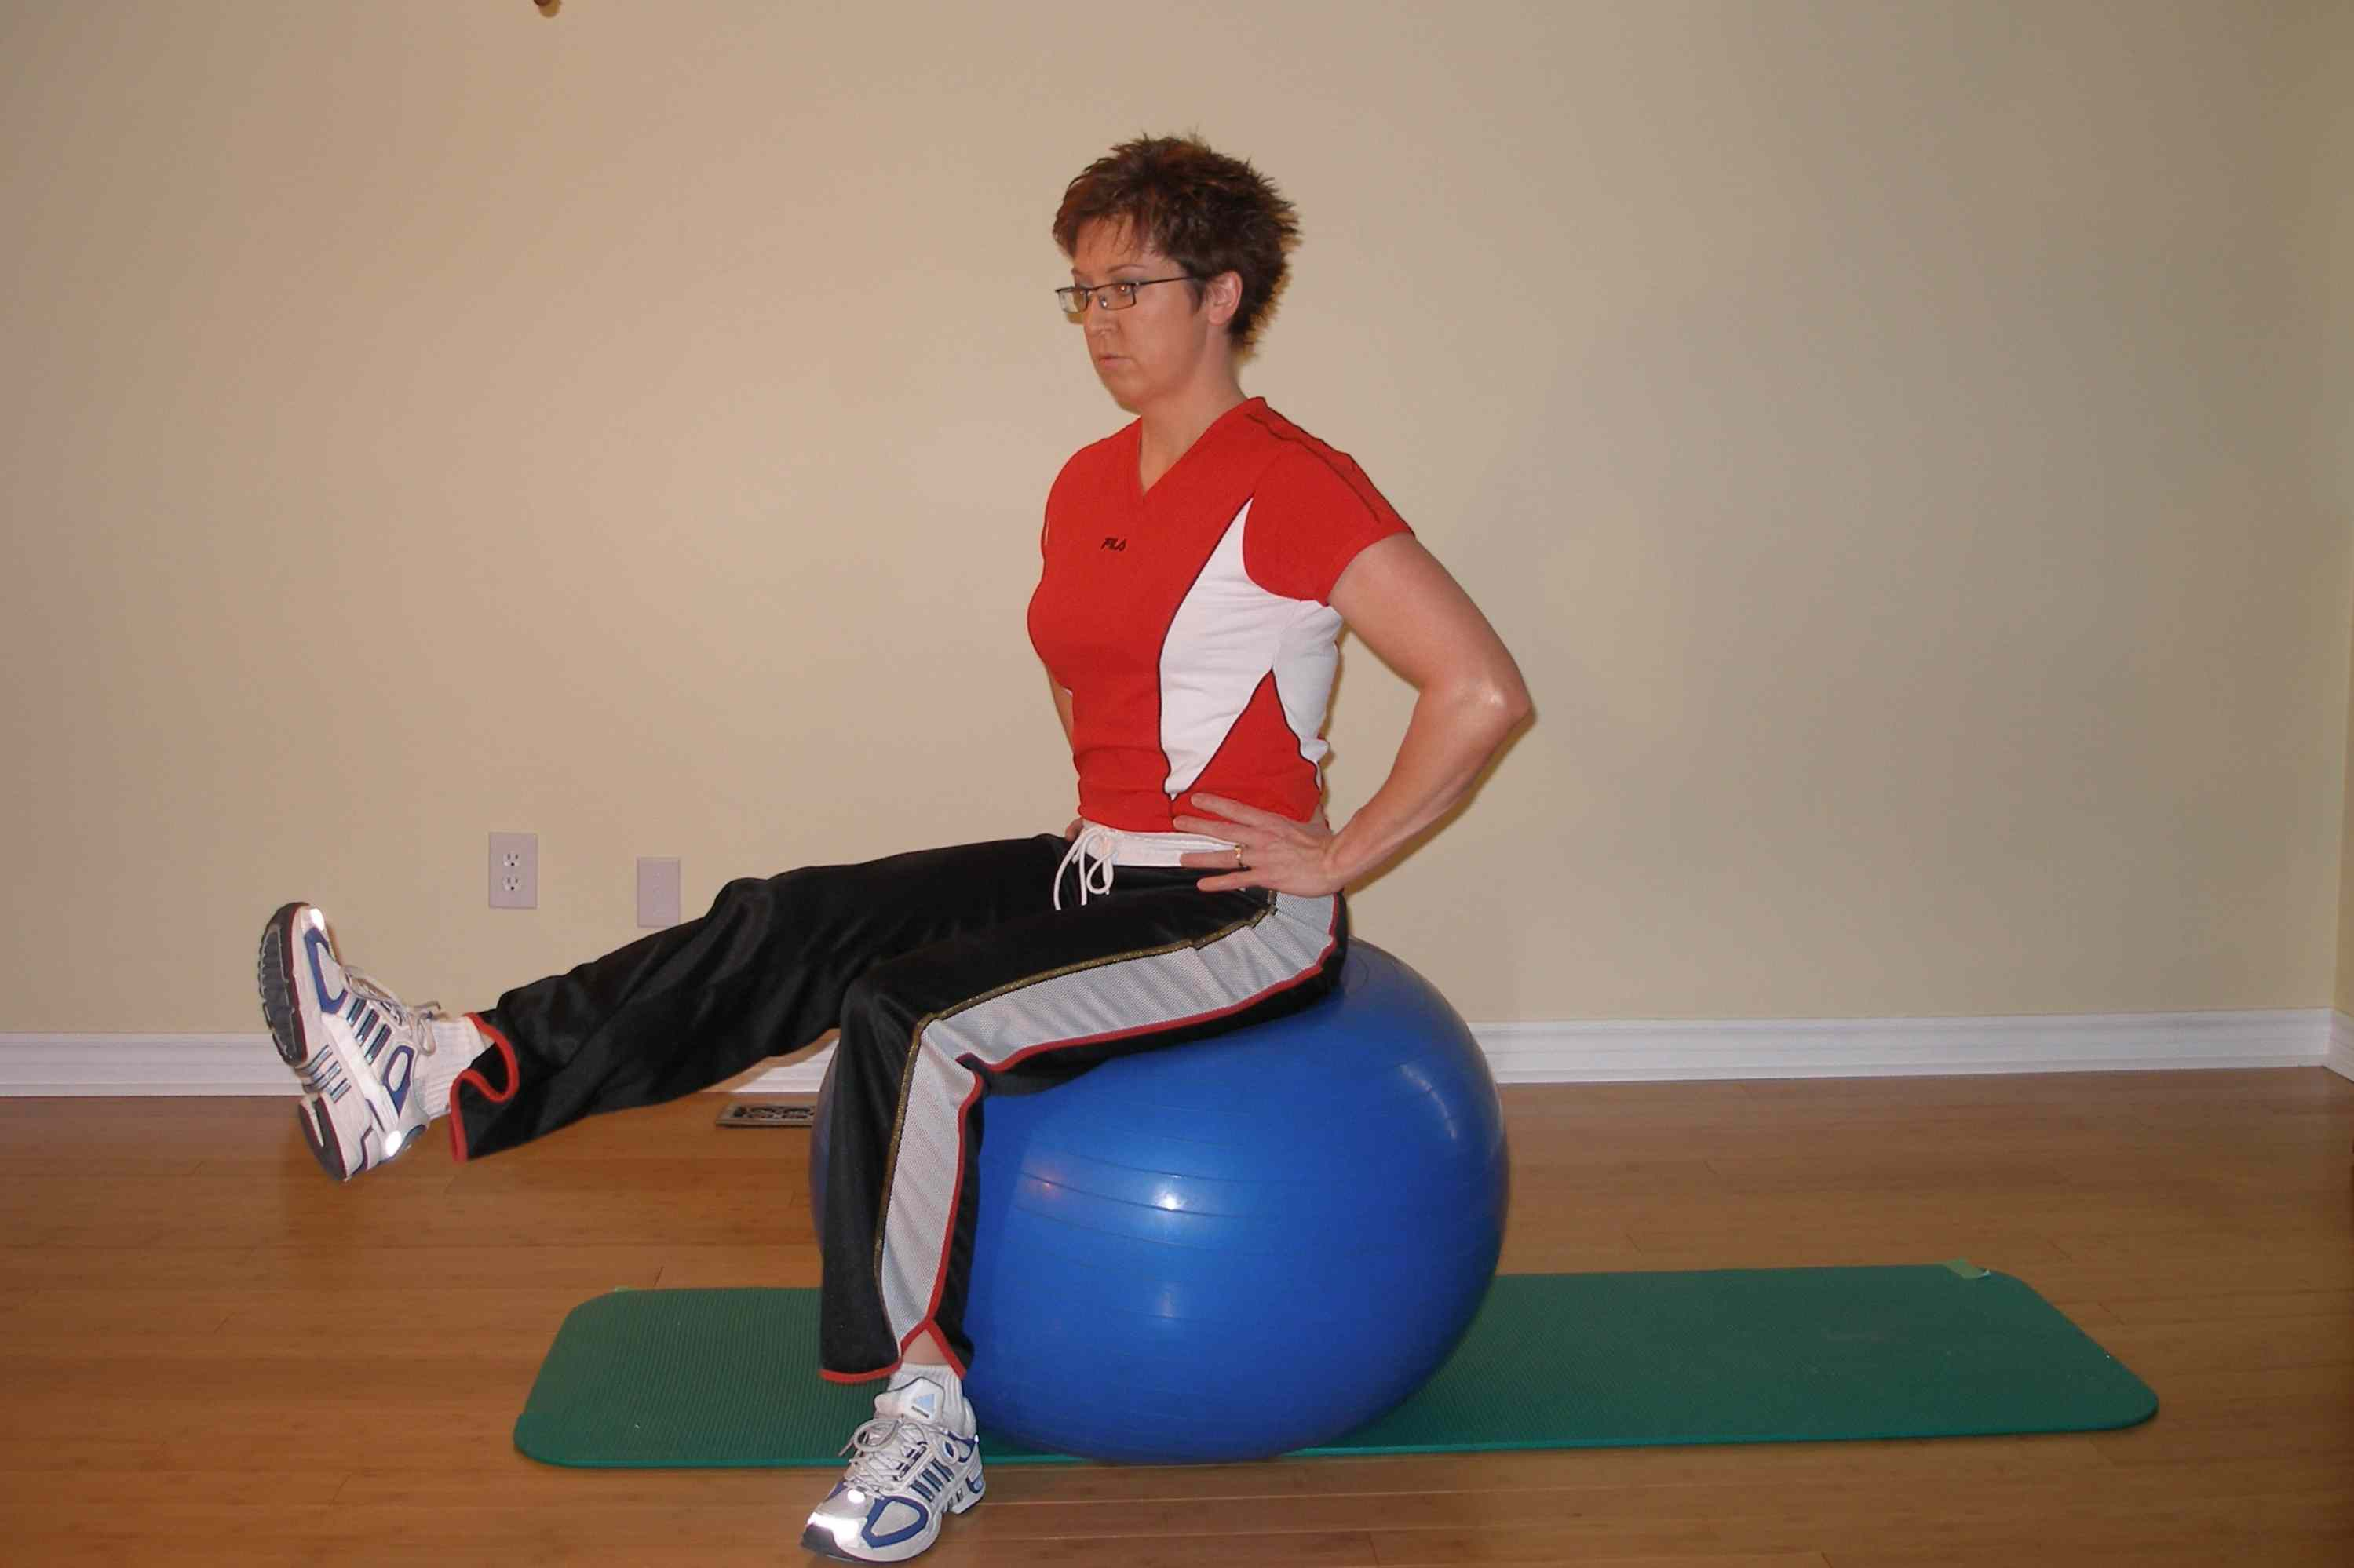 Stability Ball Exercise: Leg Lifts Stability Ball Exercise: Leg Lifts new photo